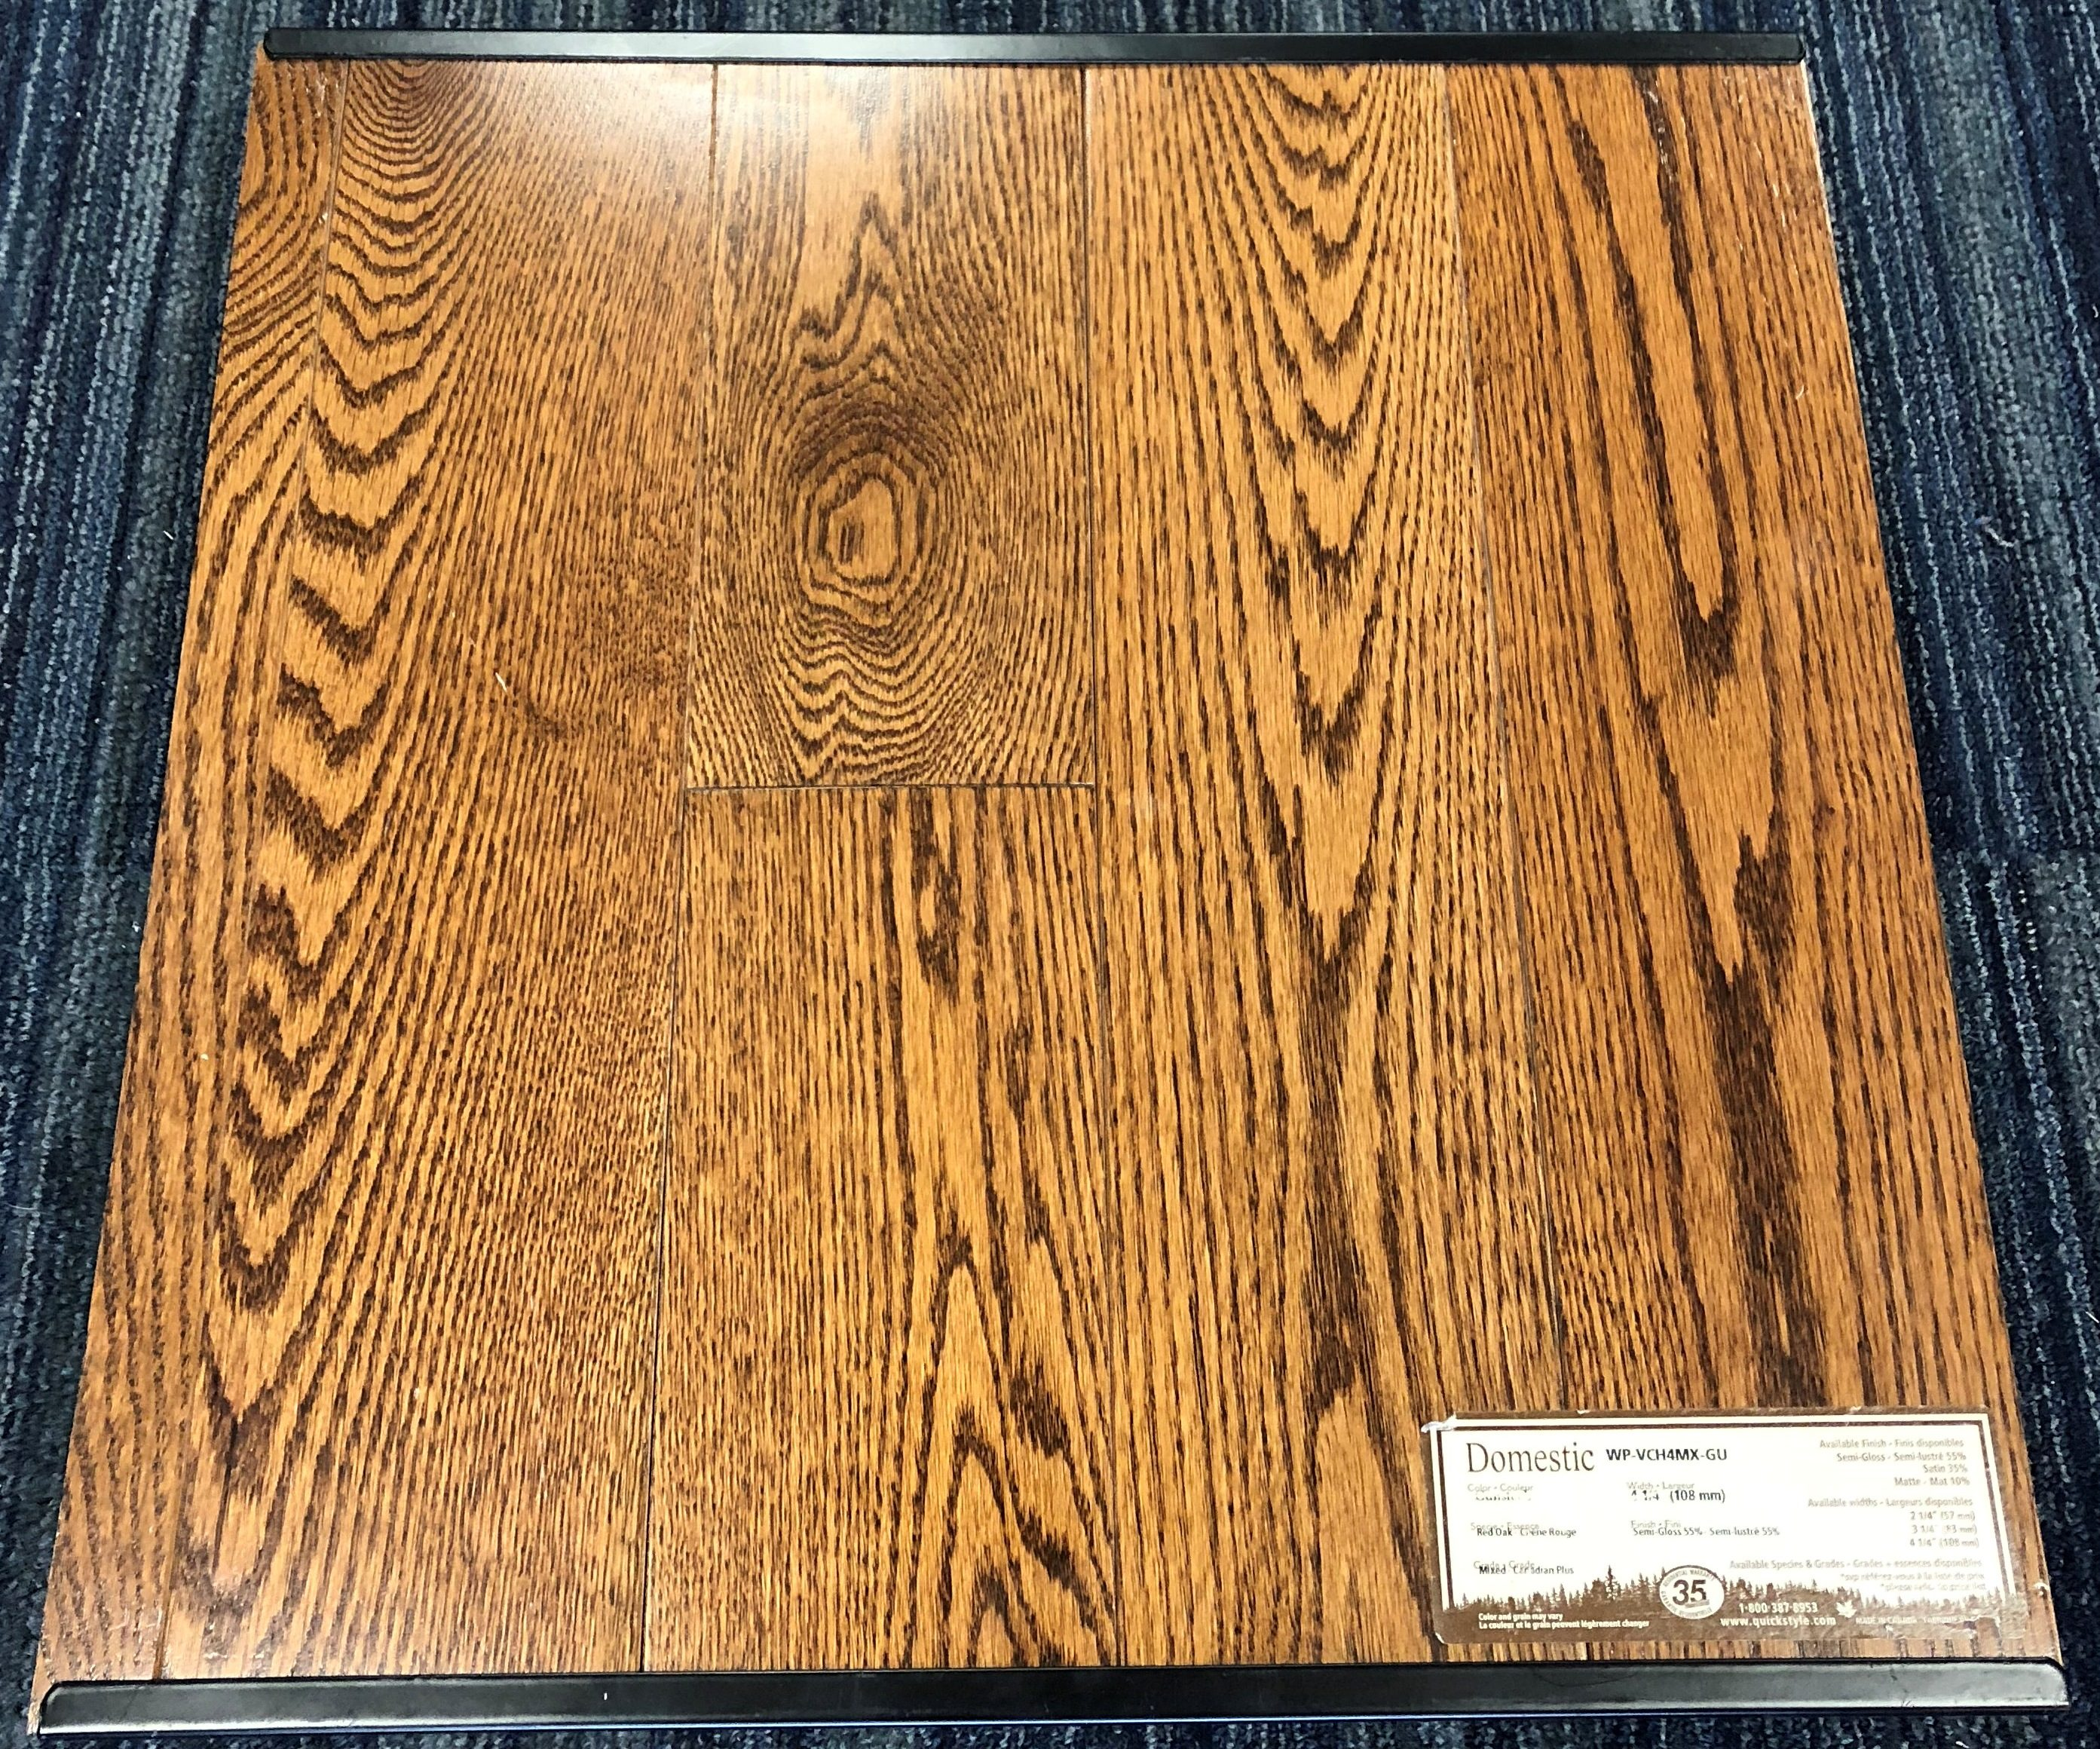 Gunstock Wickham Red Oak Domestic Hardwood Flooring Image